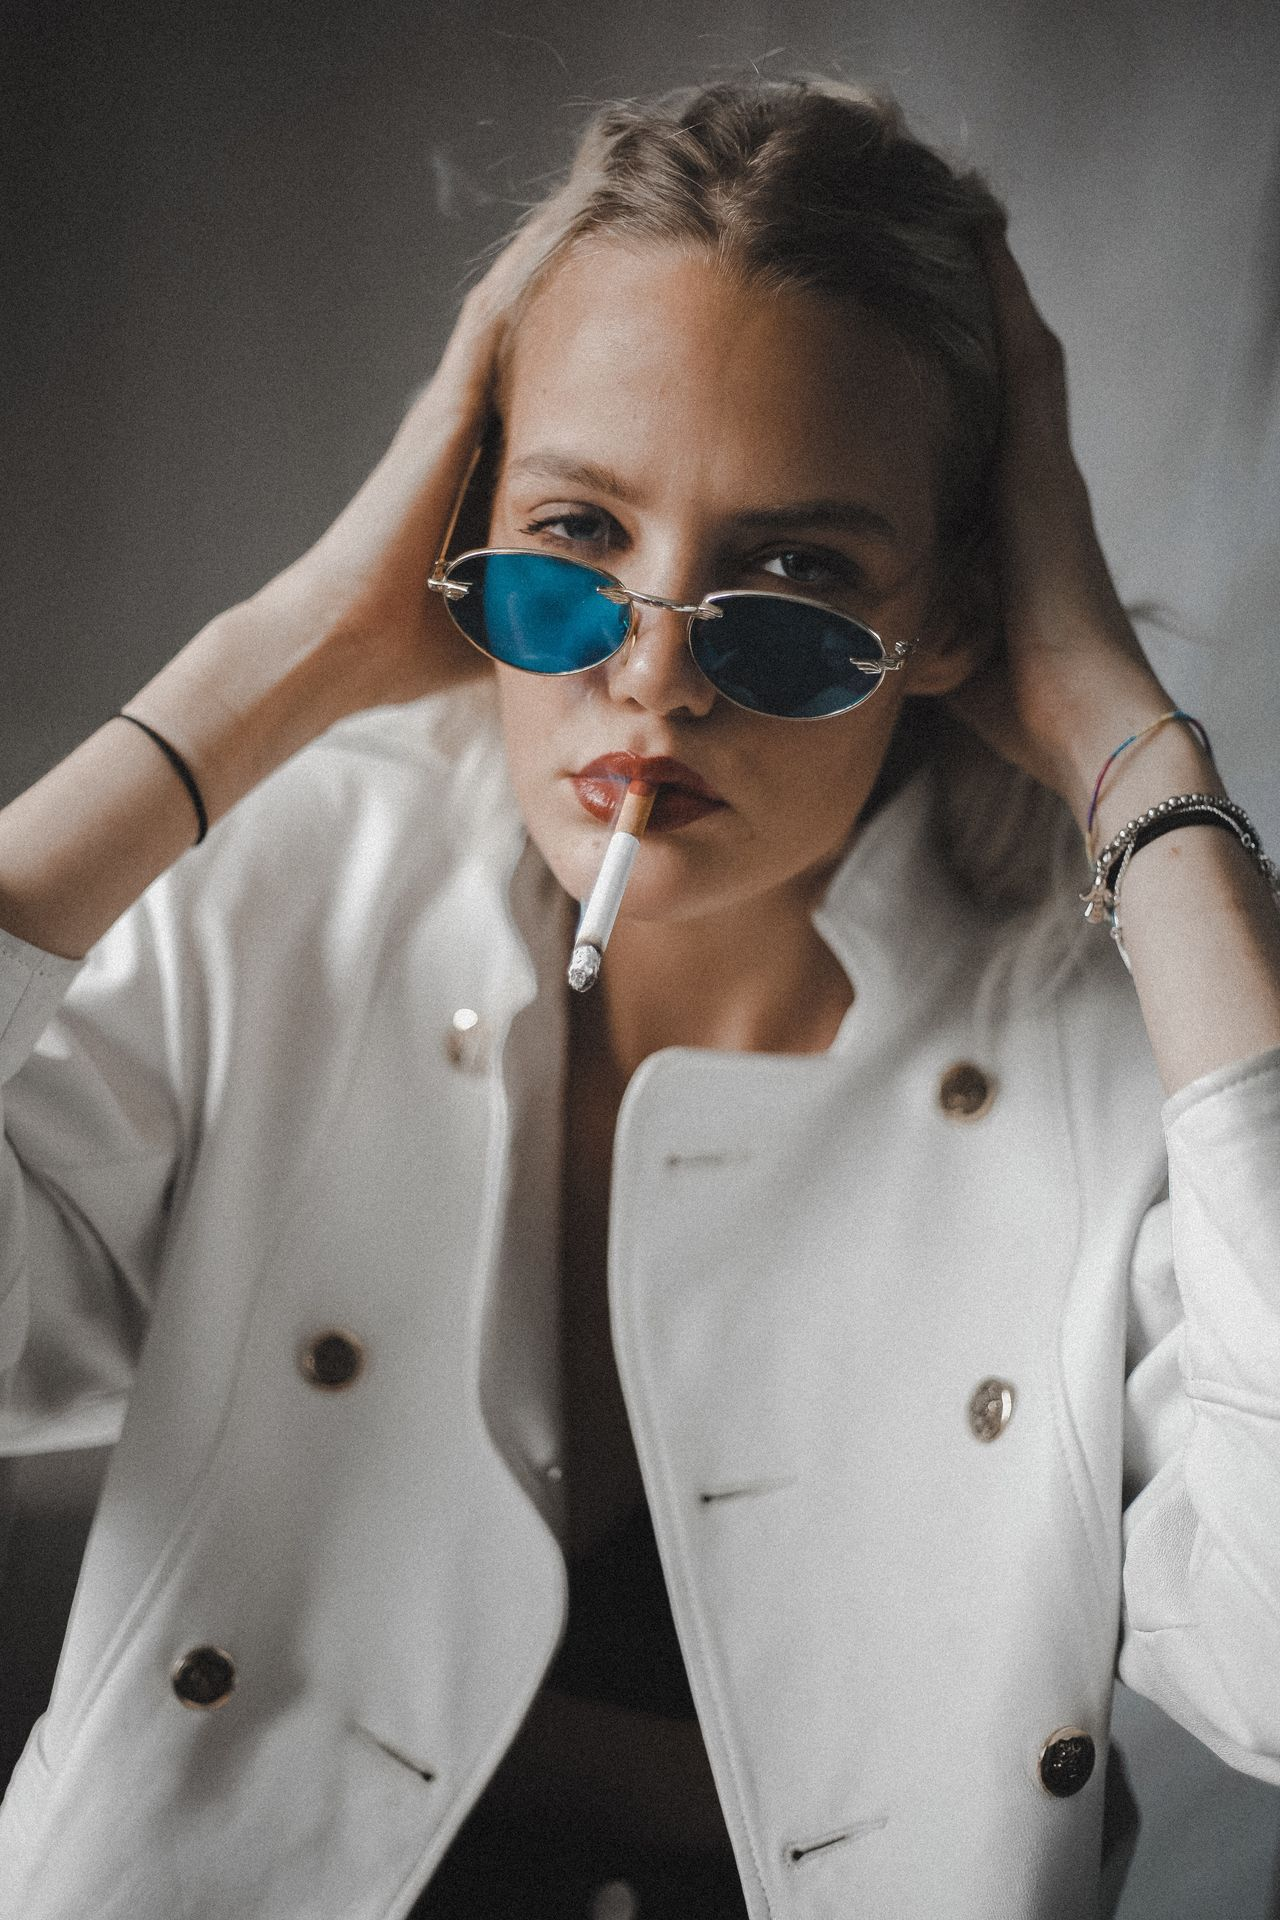 Portrait of woman wearing sunglasses while smoking cigarette